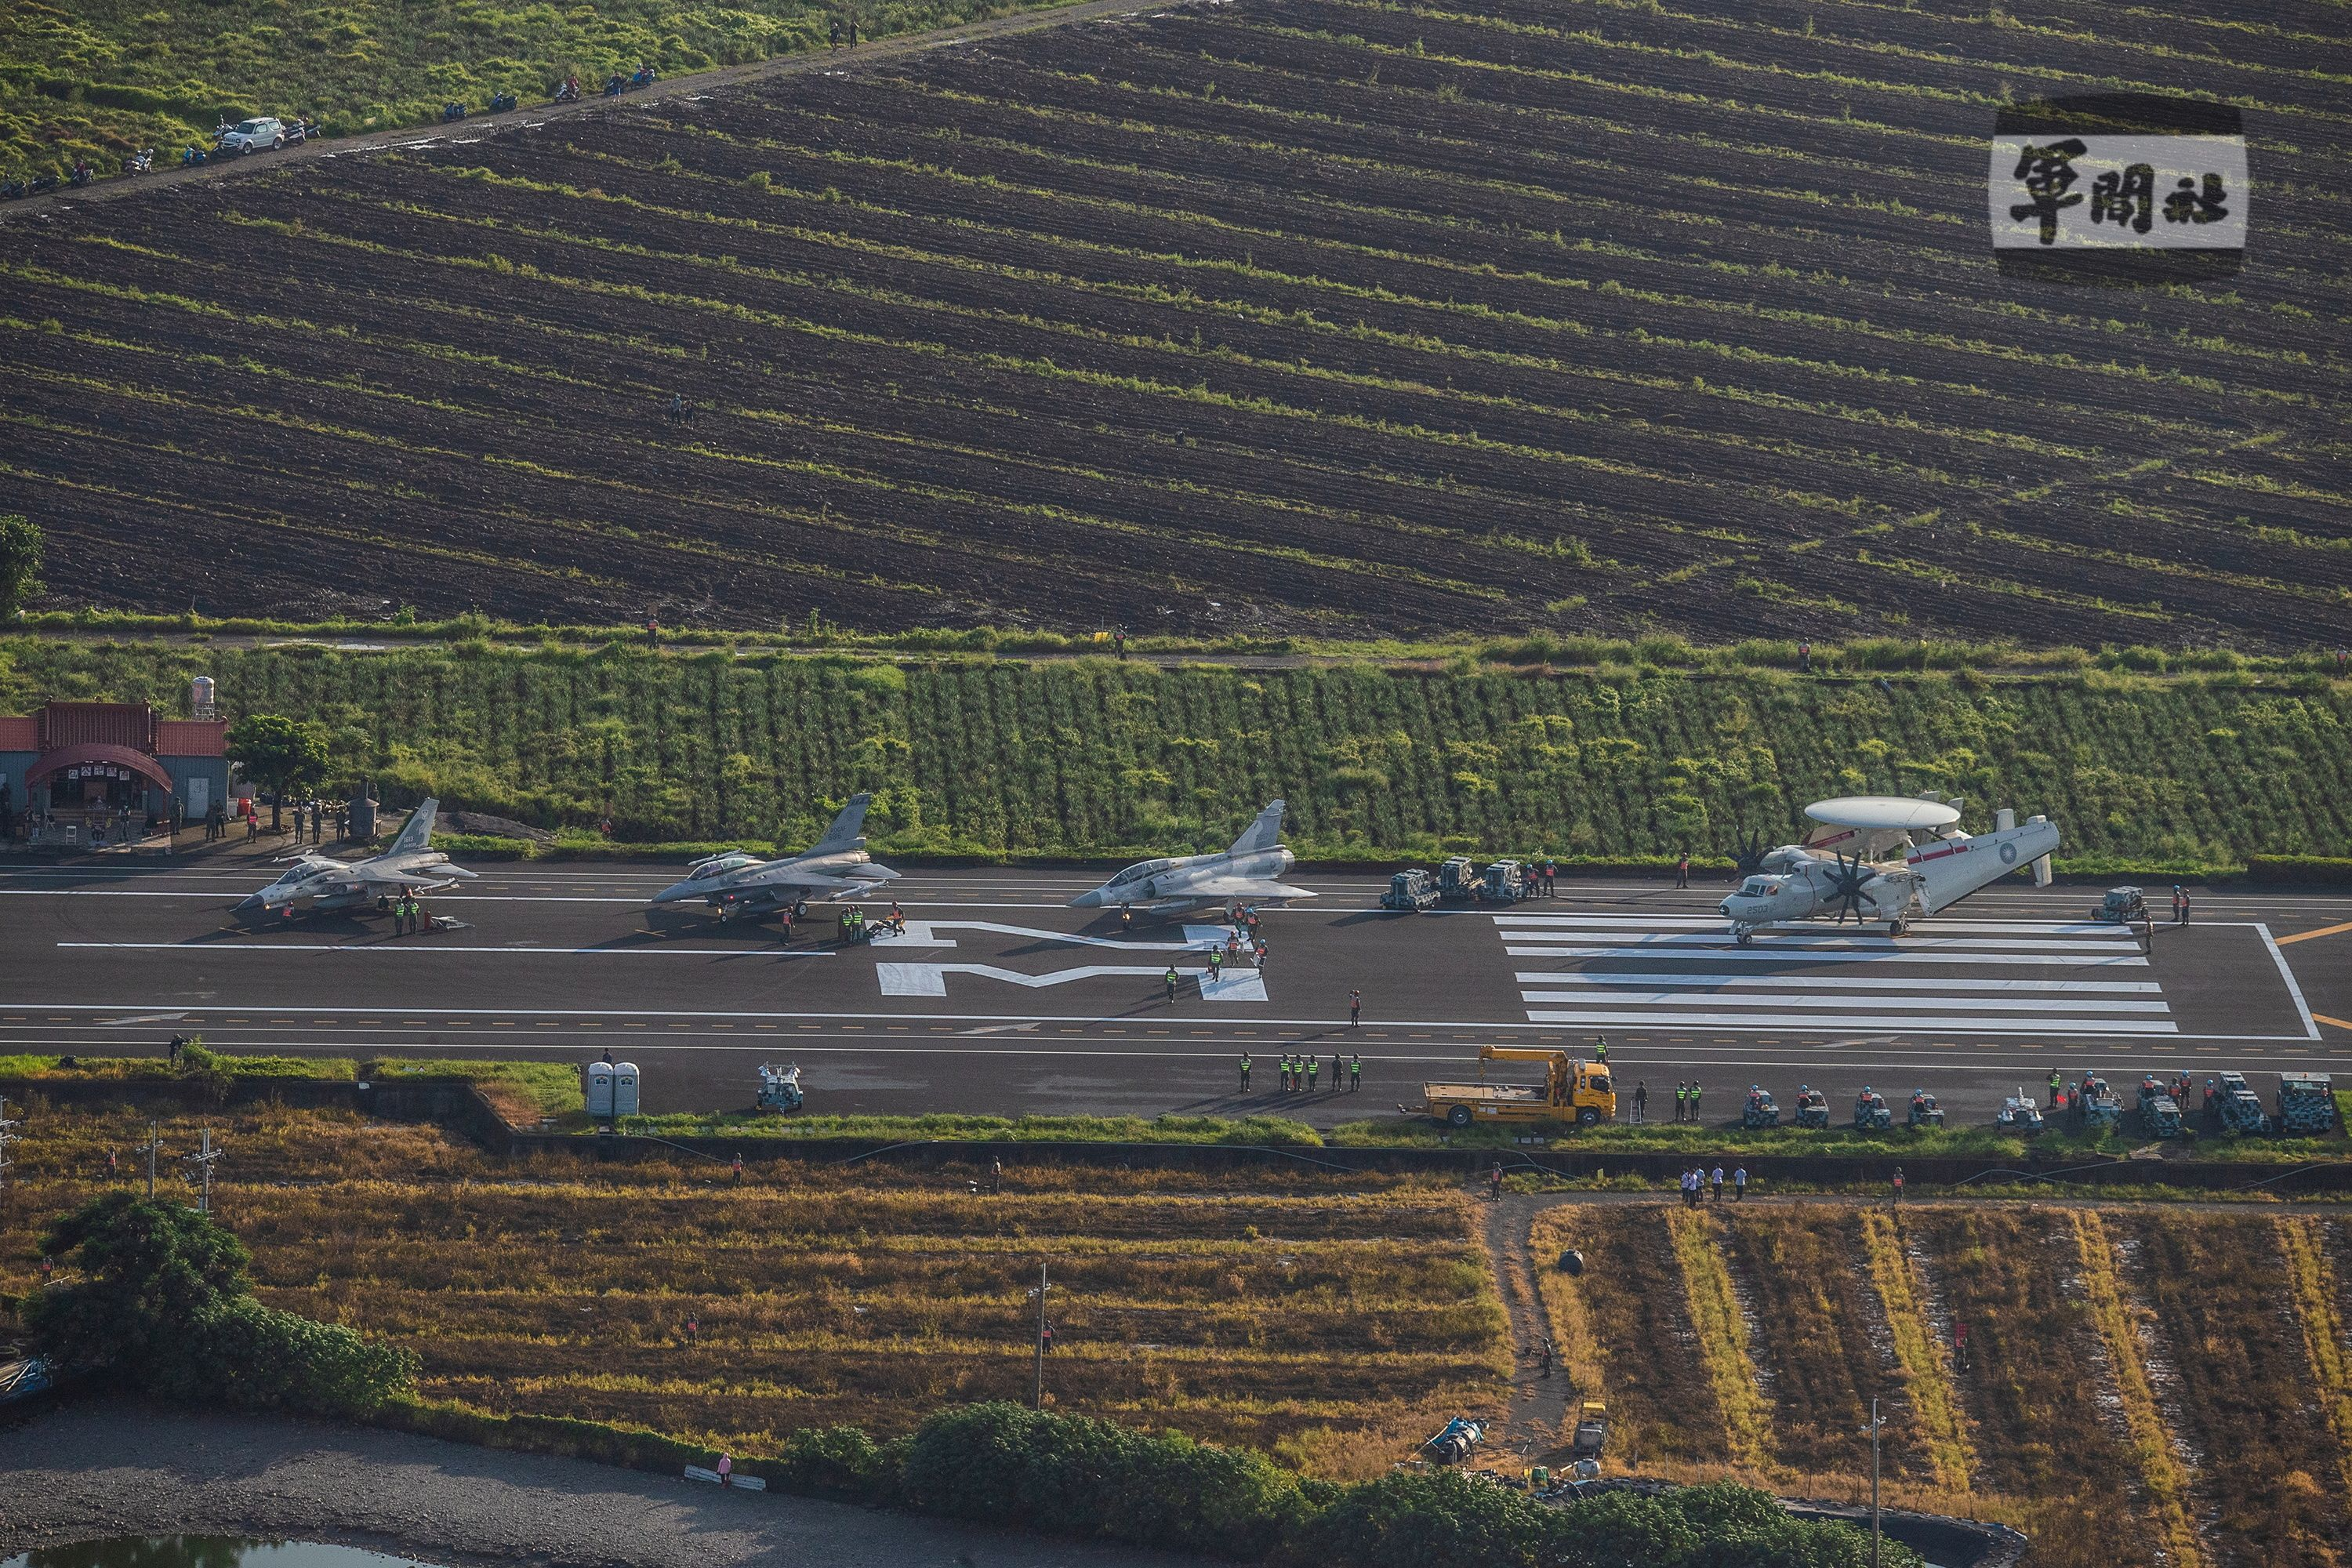 Taiwanese Air Force fighter jets park on a highway that is converted as a runway during the take-off and landing drill as part of the annual Han Kuang drill in Pingtung, Taiwan, 15 September 2021. TAIWAN MILITARY NEWS AGENCY/Handout via REUTERS